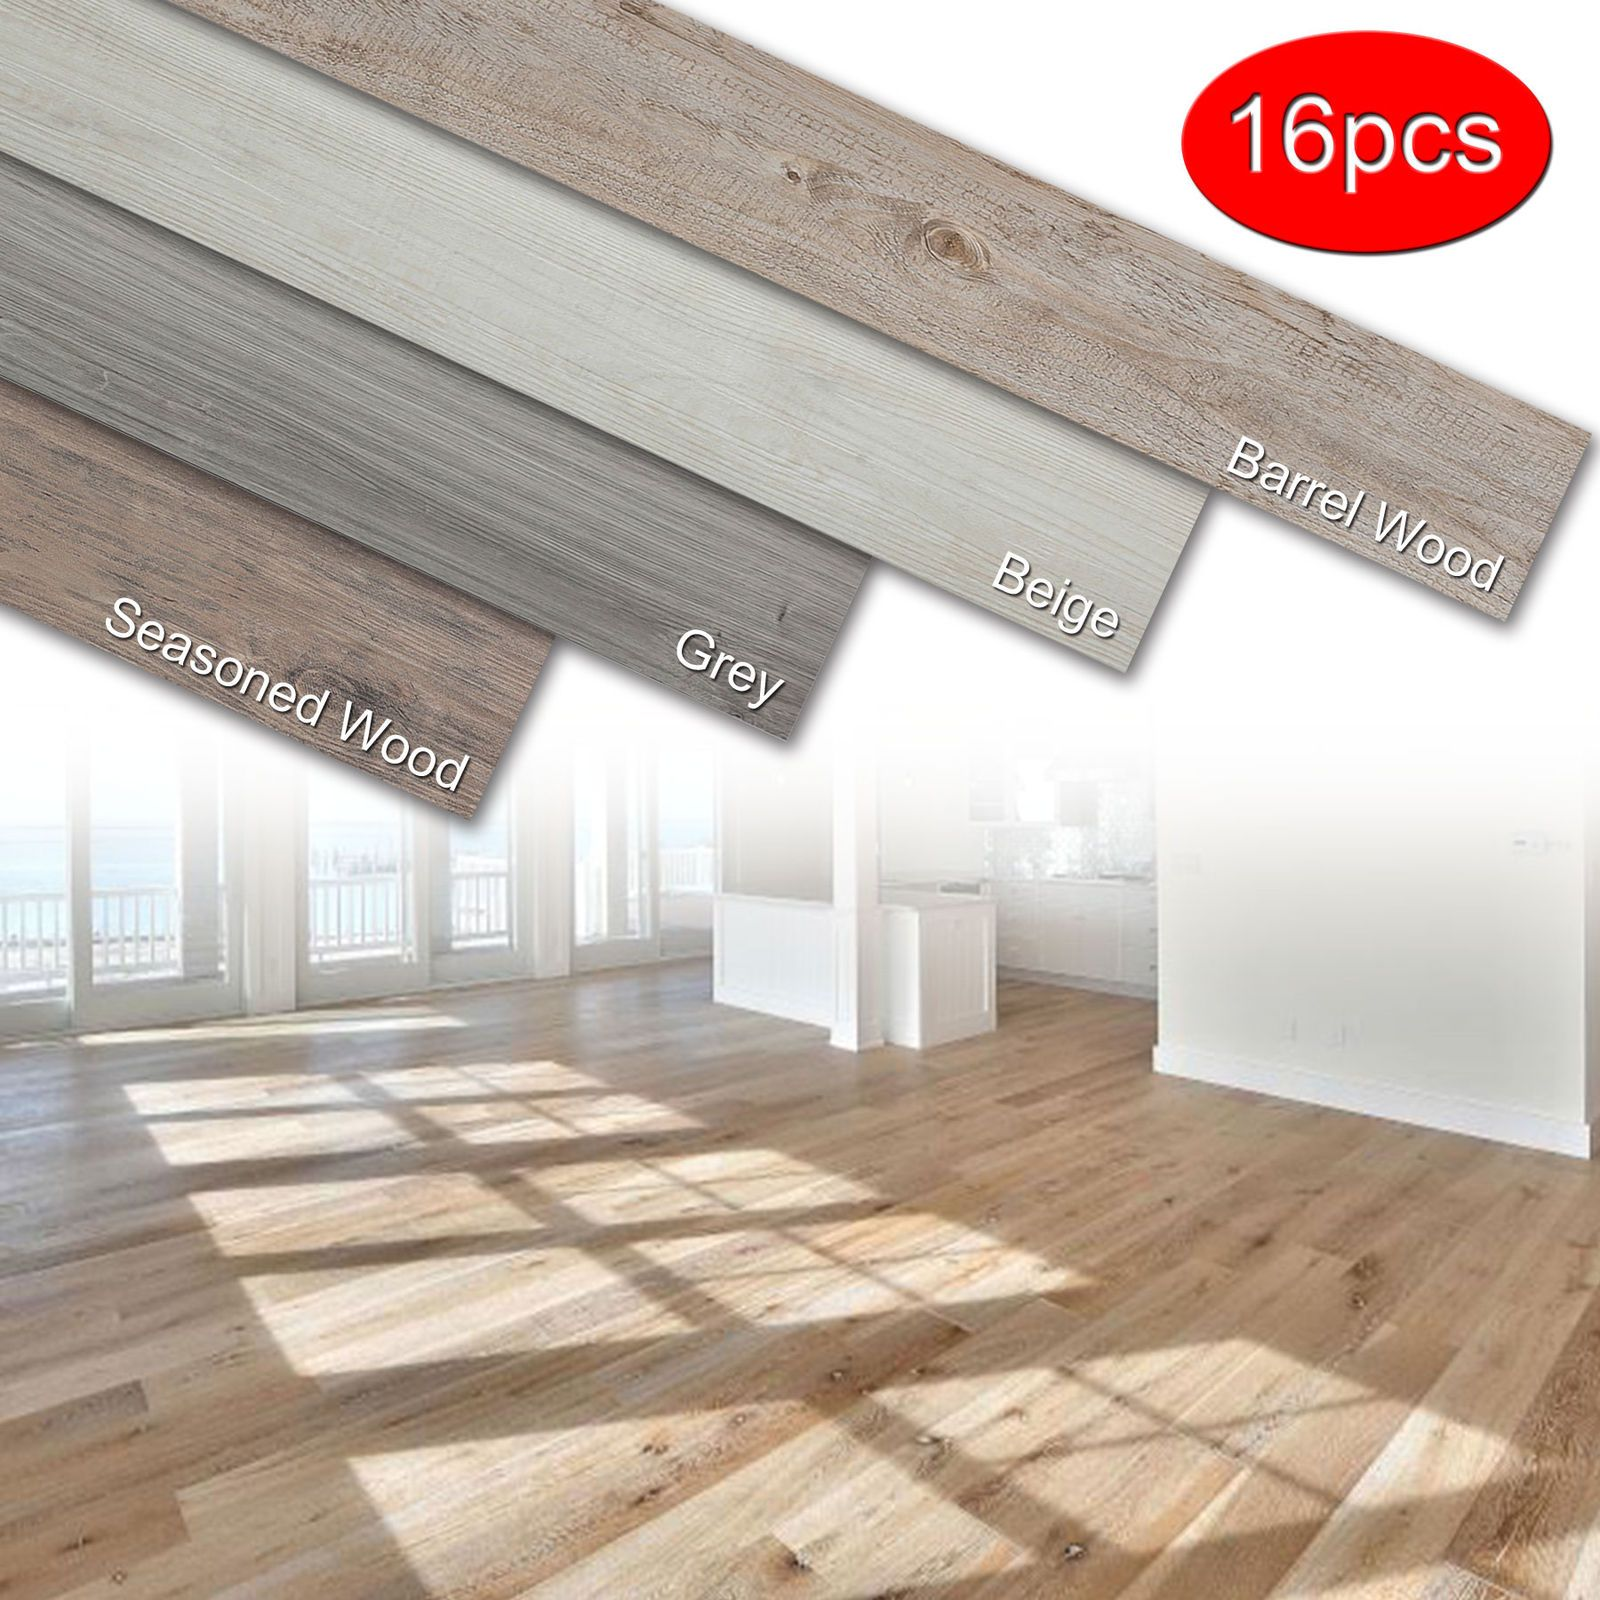 Details About Self Adhesive 16 Pcs Vinyl Floor Planks Wood Tiles Home Furnishing Peel Stick Vinyl Flooring Plank Flooring Wooden Tile